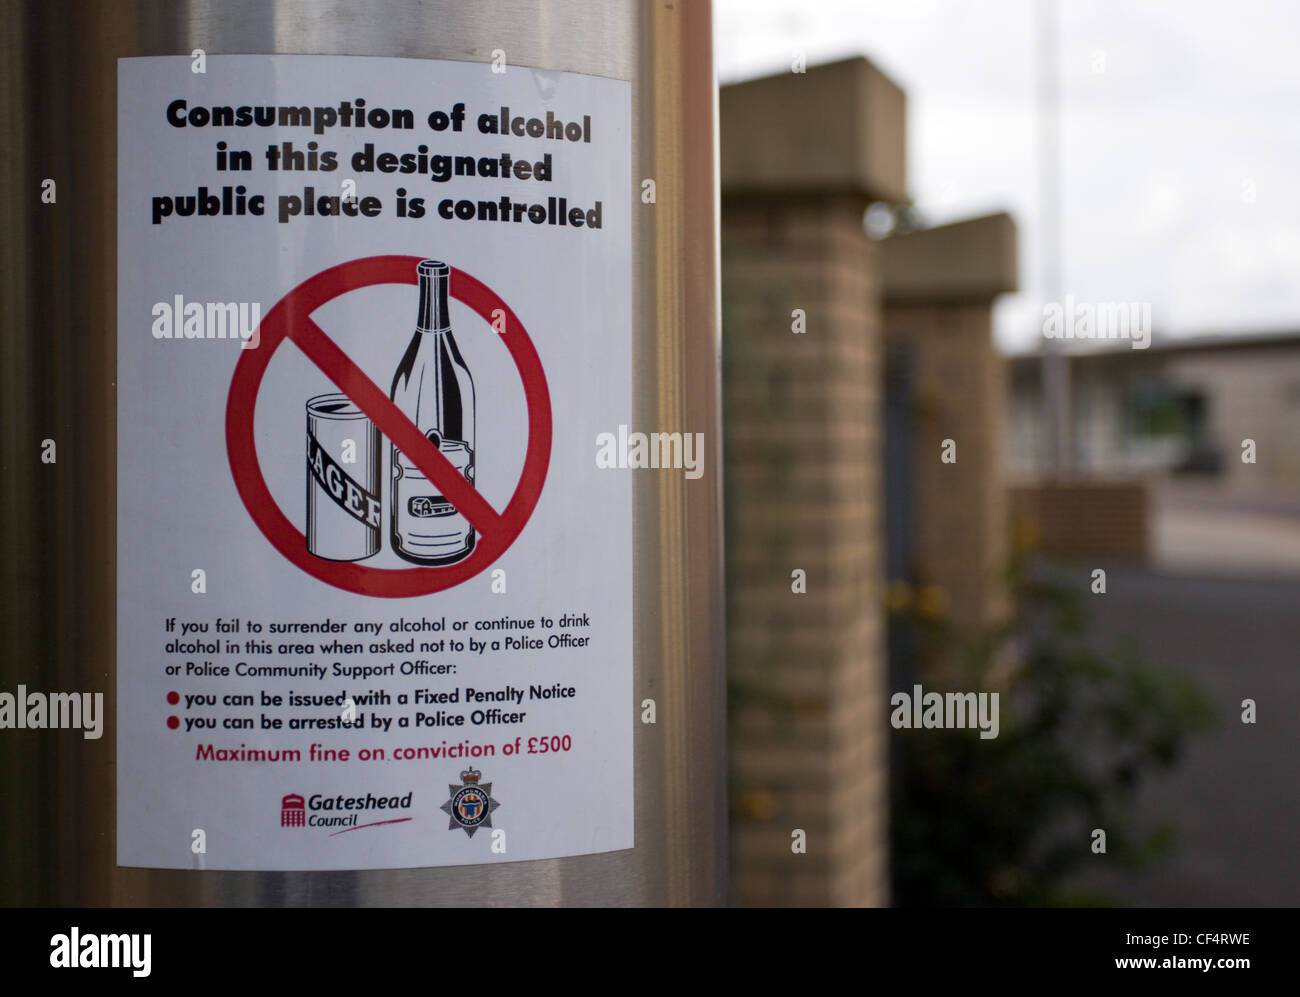 Sign warning that consumption of alcohol in the area is controlled. - Stock Image